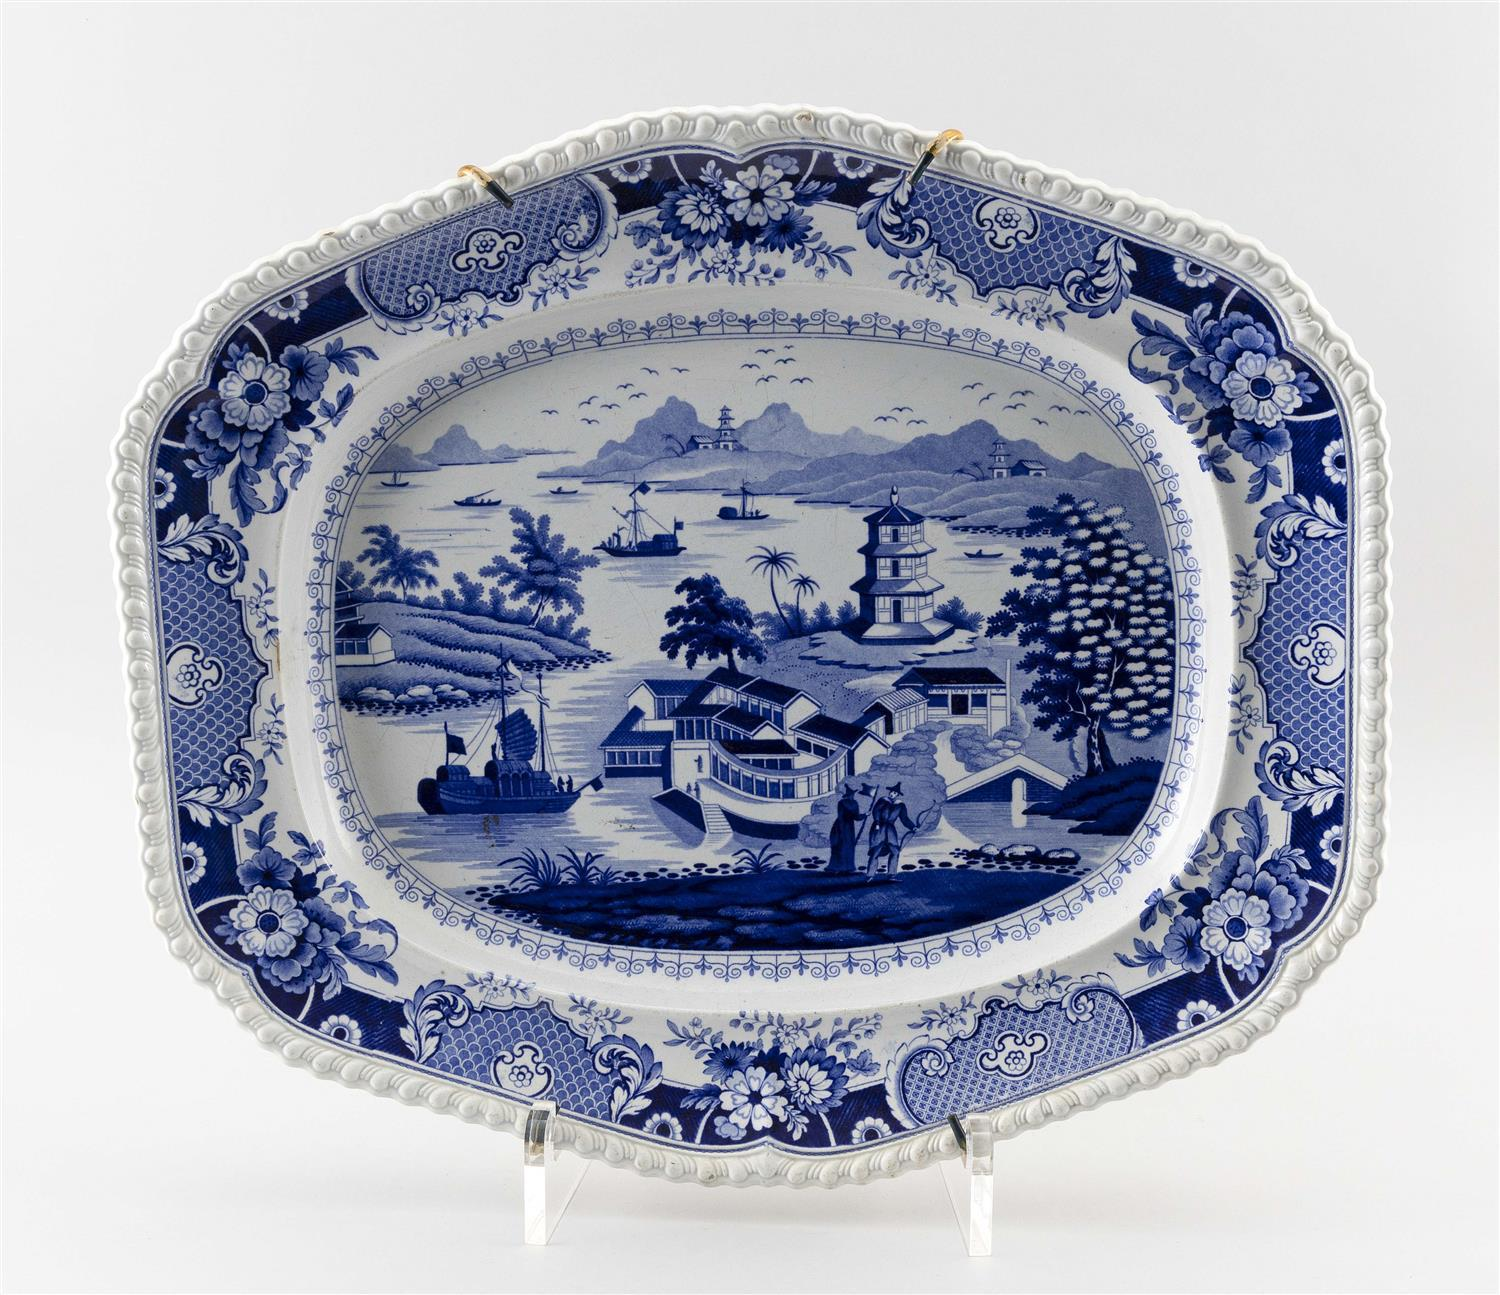 """RIDGWAY """"INDIA TEMPLE"""" PATTERN BLUE AND WHITE TRANSFERWARE PLATTER Stamped factory mark. Length 21.5""""."""